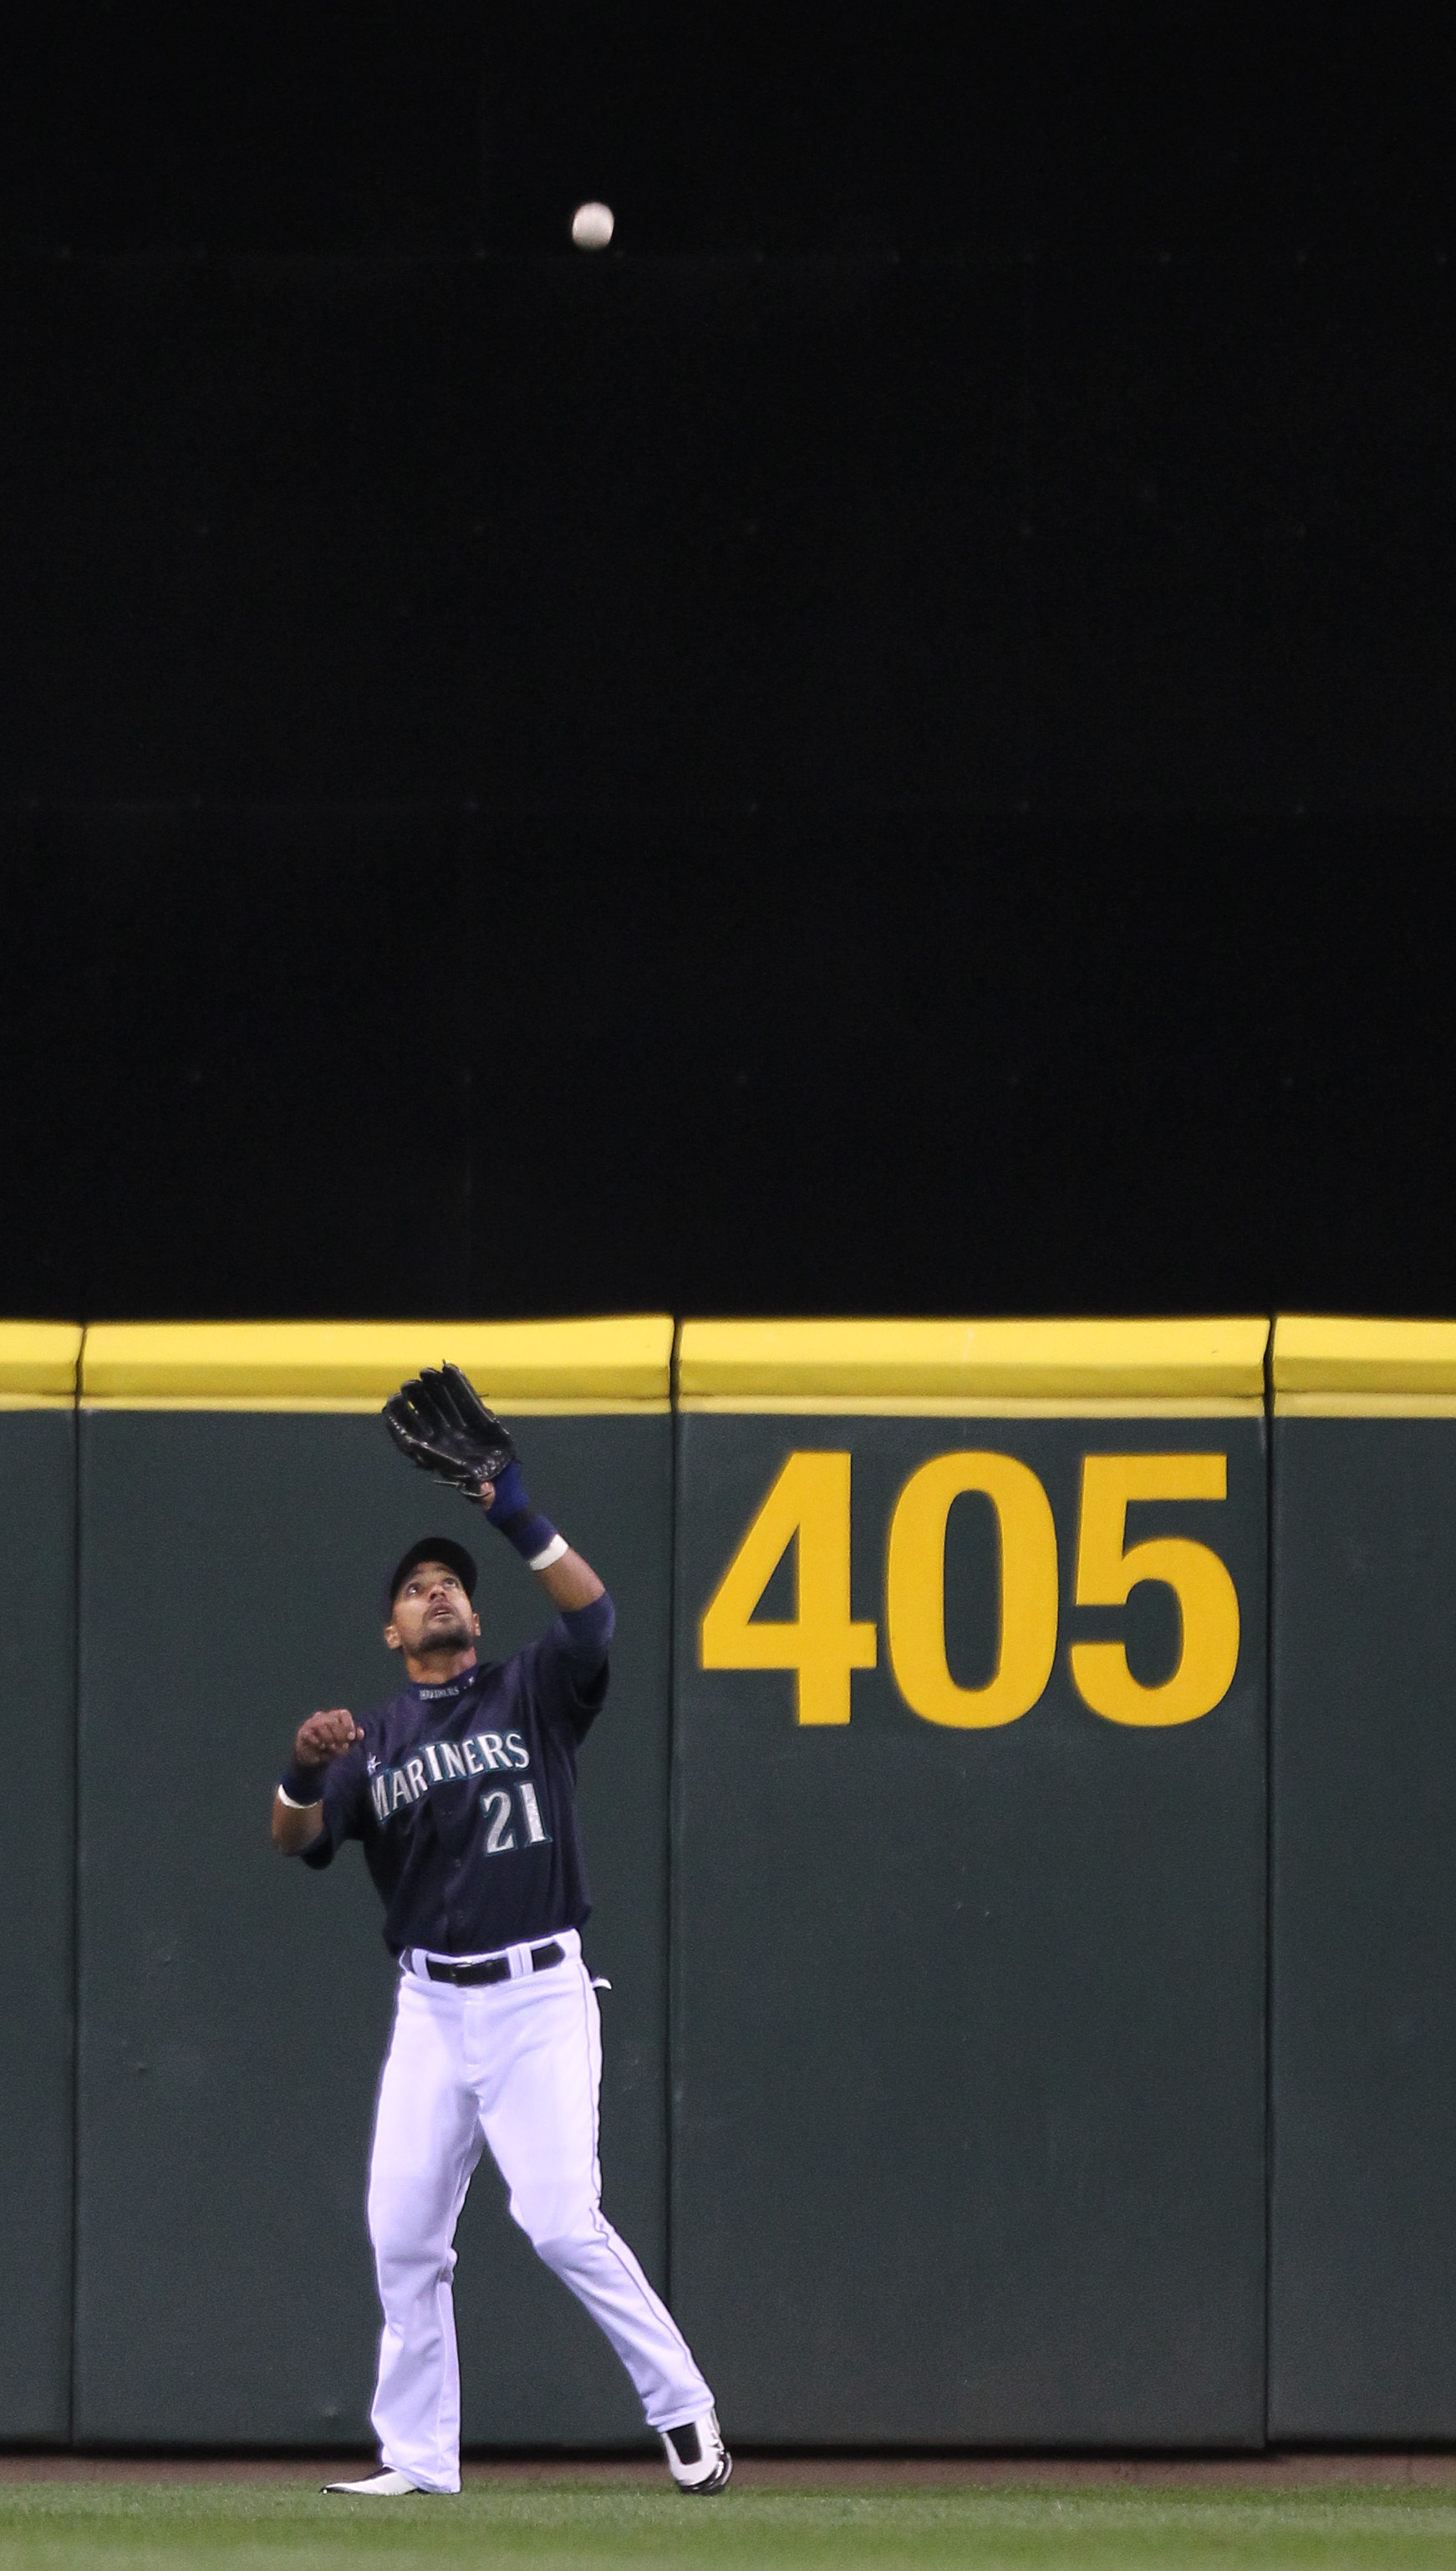 SEATTLE - SEPTEMBER 13:  Center fielder Franklin Gutierrez #21 of the Seattle Mariners catches a fly ball by Adrian Beltre #29 of the Boston Red Sox at Safeco Field on September 13, 2010 in Seattle, Washington. (Photo by Otto Greule Jr/Getty Images)